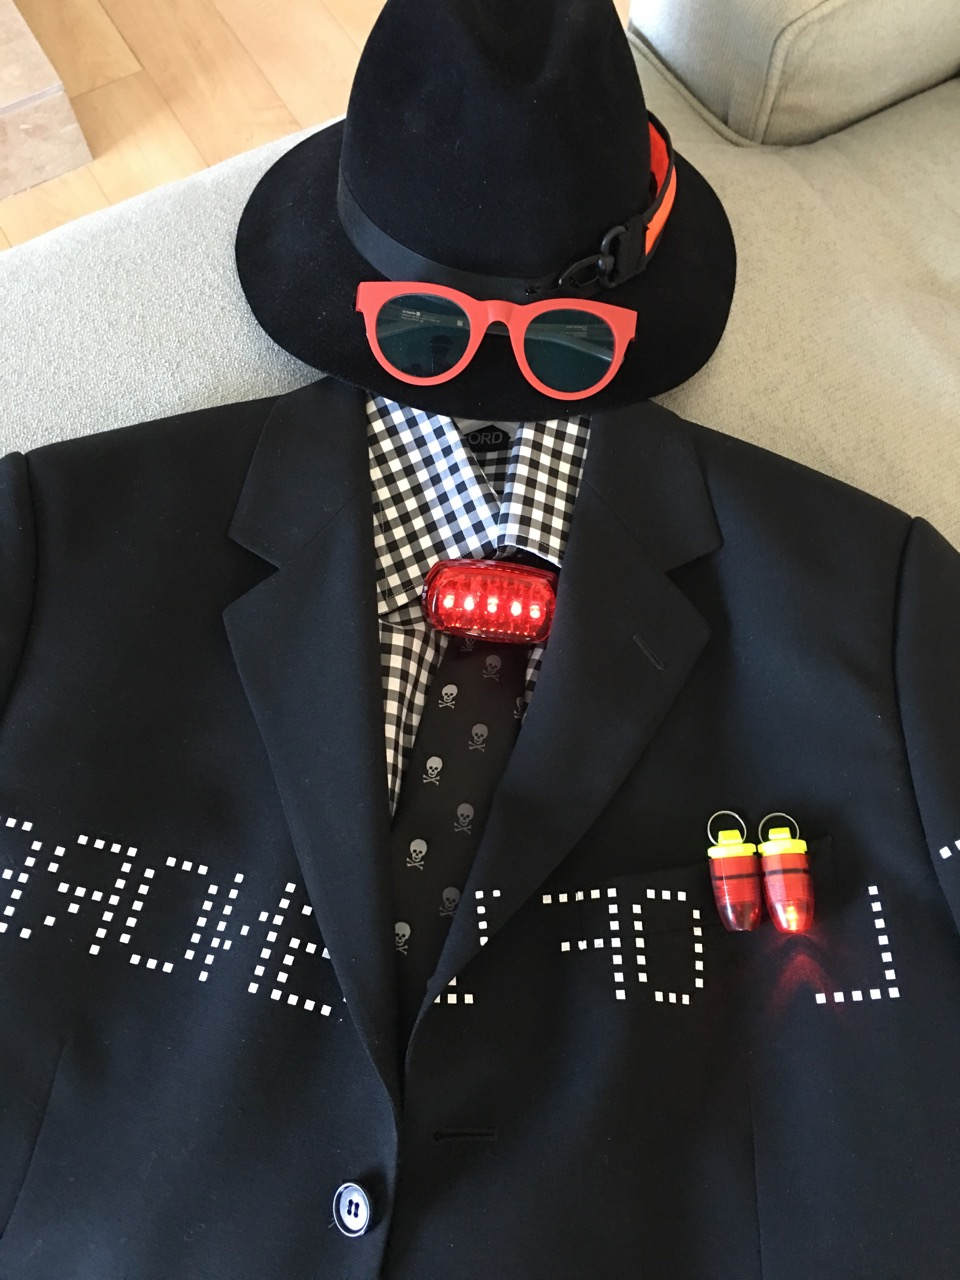 Creating playful outfits is one of the things I get to do as an image consultant on BrendaKinsel.com